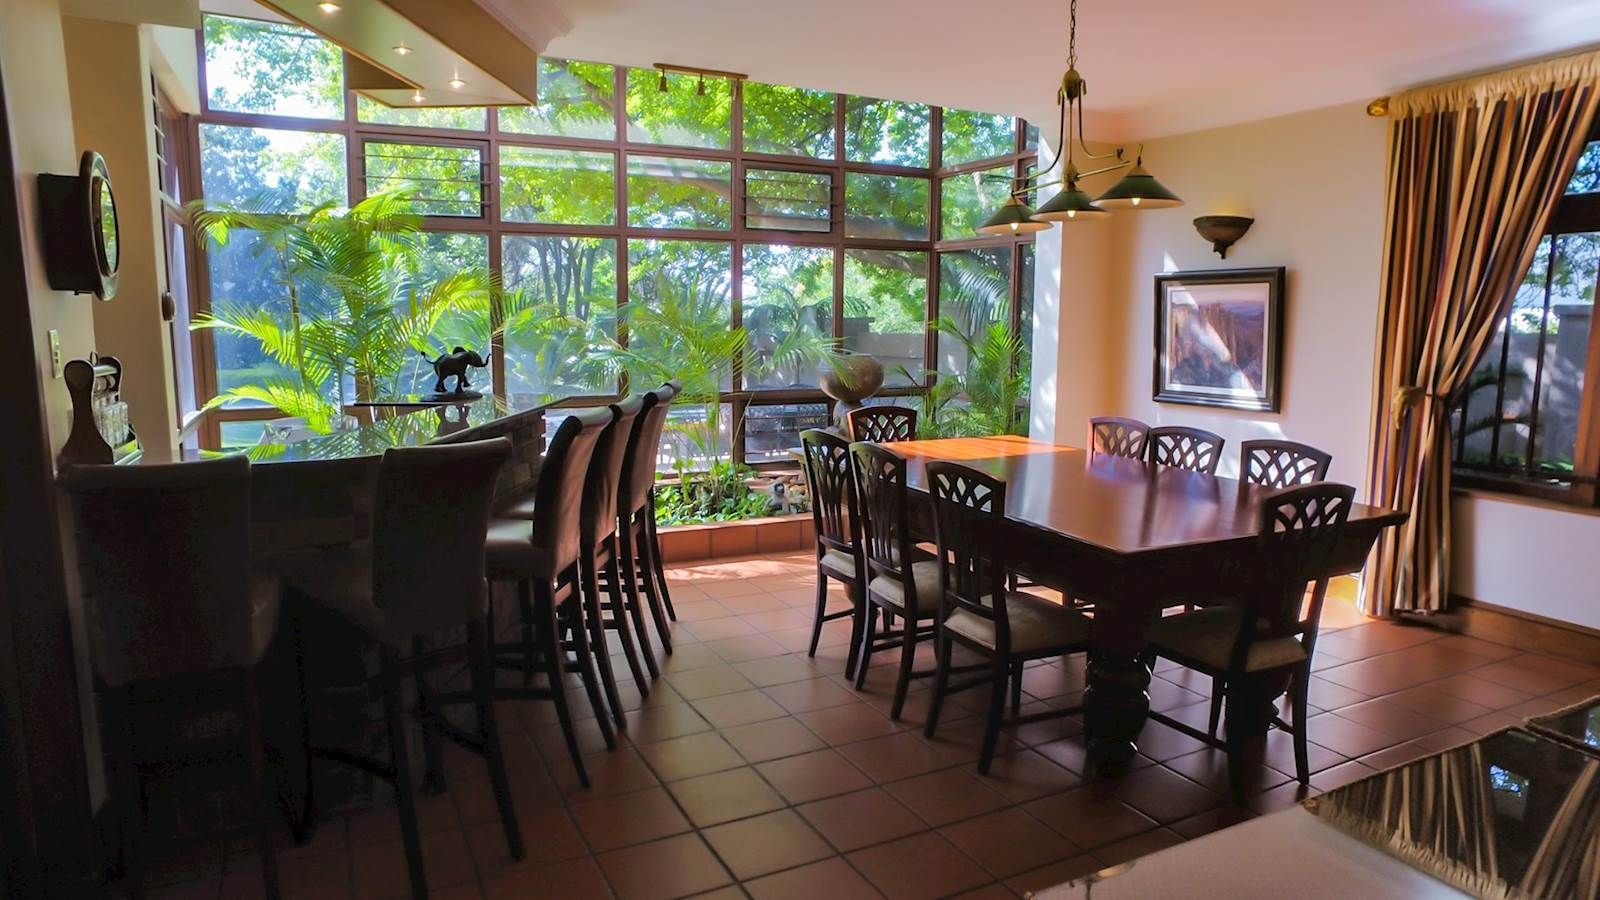 4 Bedroom House for sale in Waterkloof Ridge ENT0005736 : photo#9